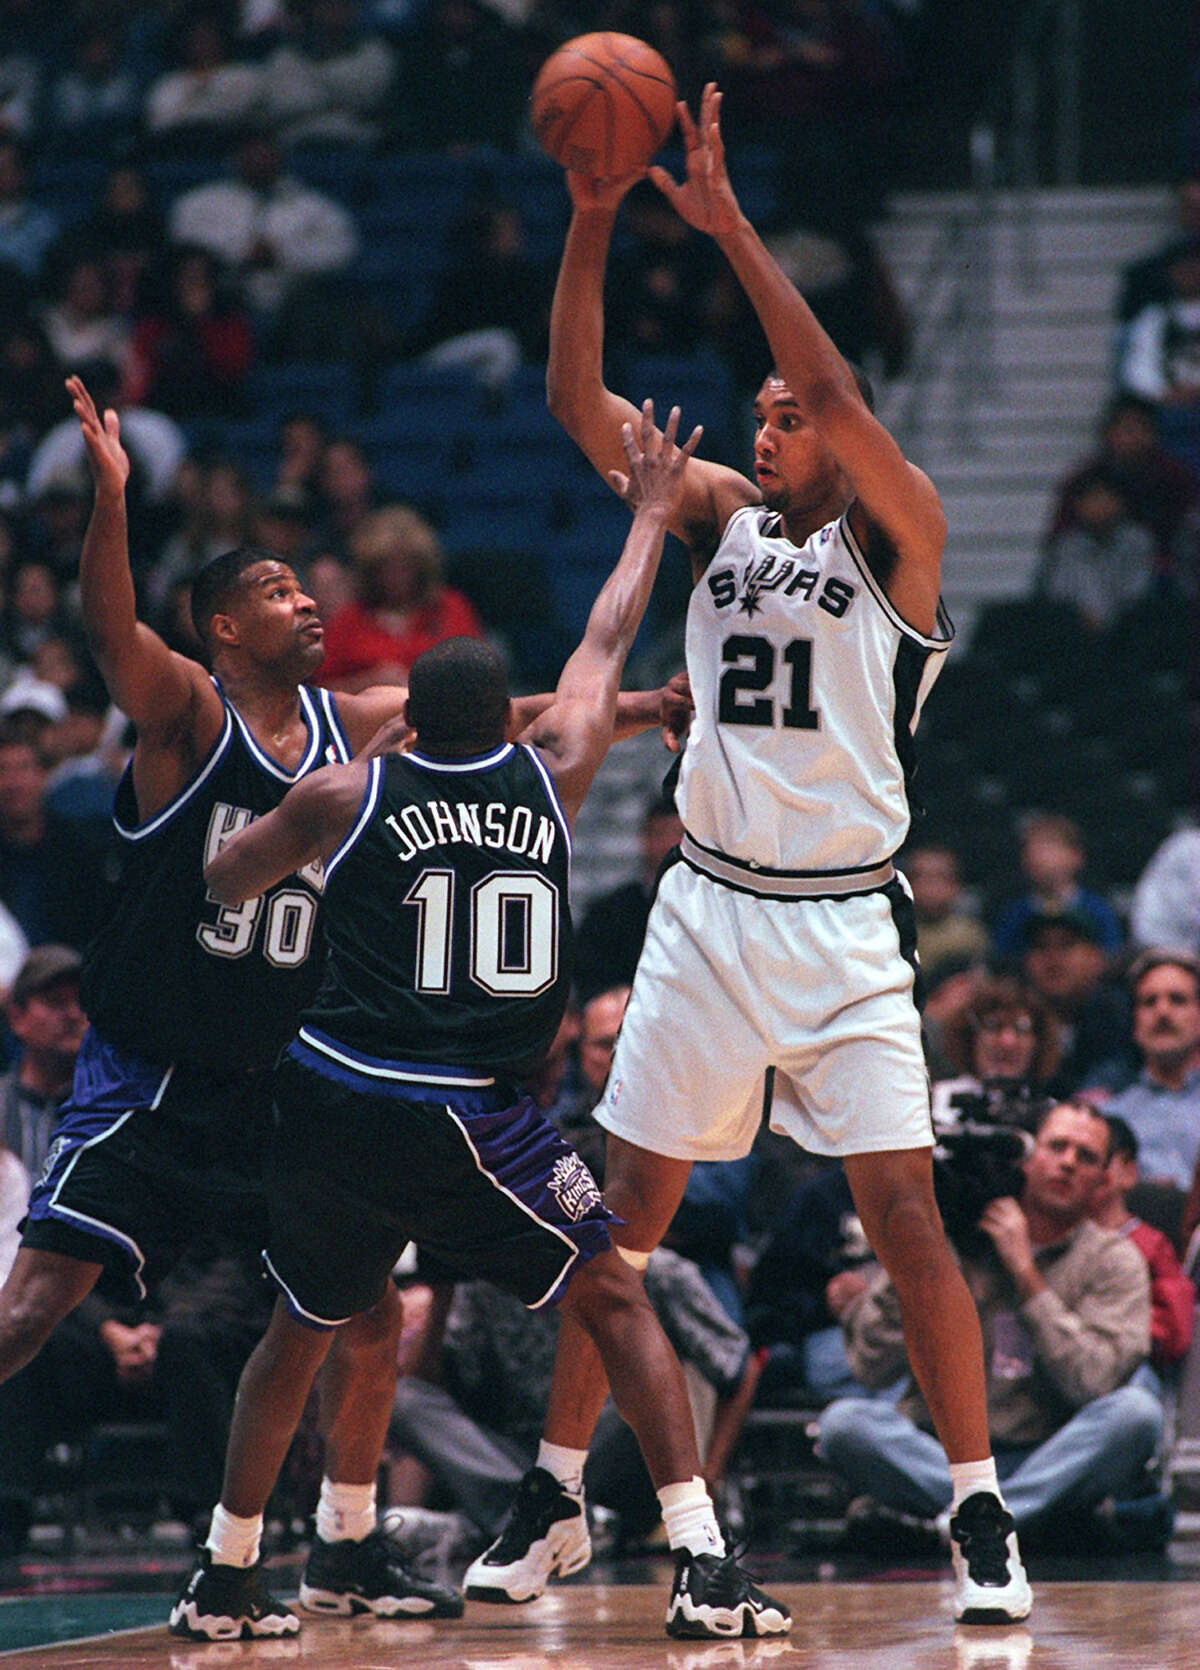 San Antonio Spurs' Tim Duncan (21) is bothered by Sacramento Kings' Anthony Johnson (10) and (30) Billy Owens during the 1st quarter action of play, Thursday, March 12, 1998 at the Alamodome in San Antonio, Texas. (Joey Garcia,San Antonio Express-News)